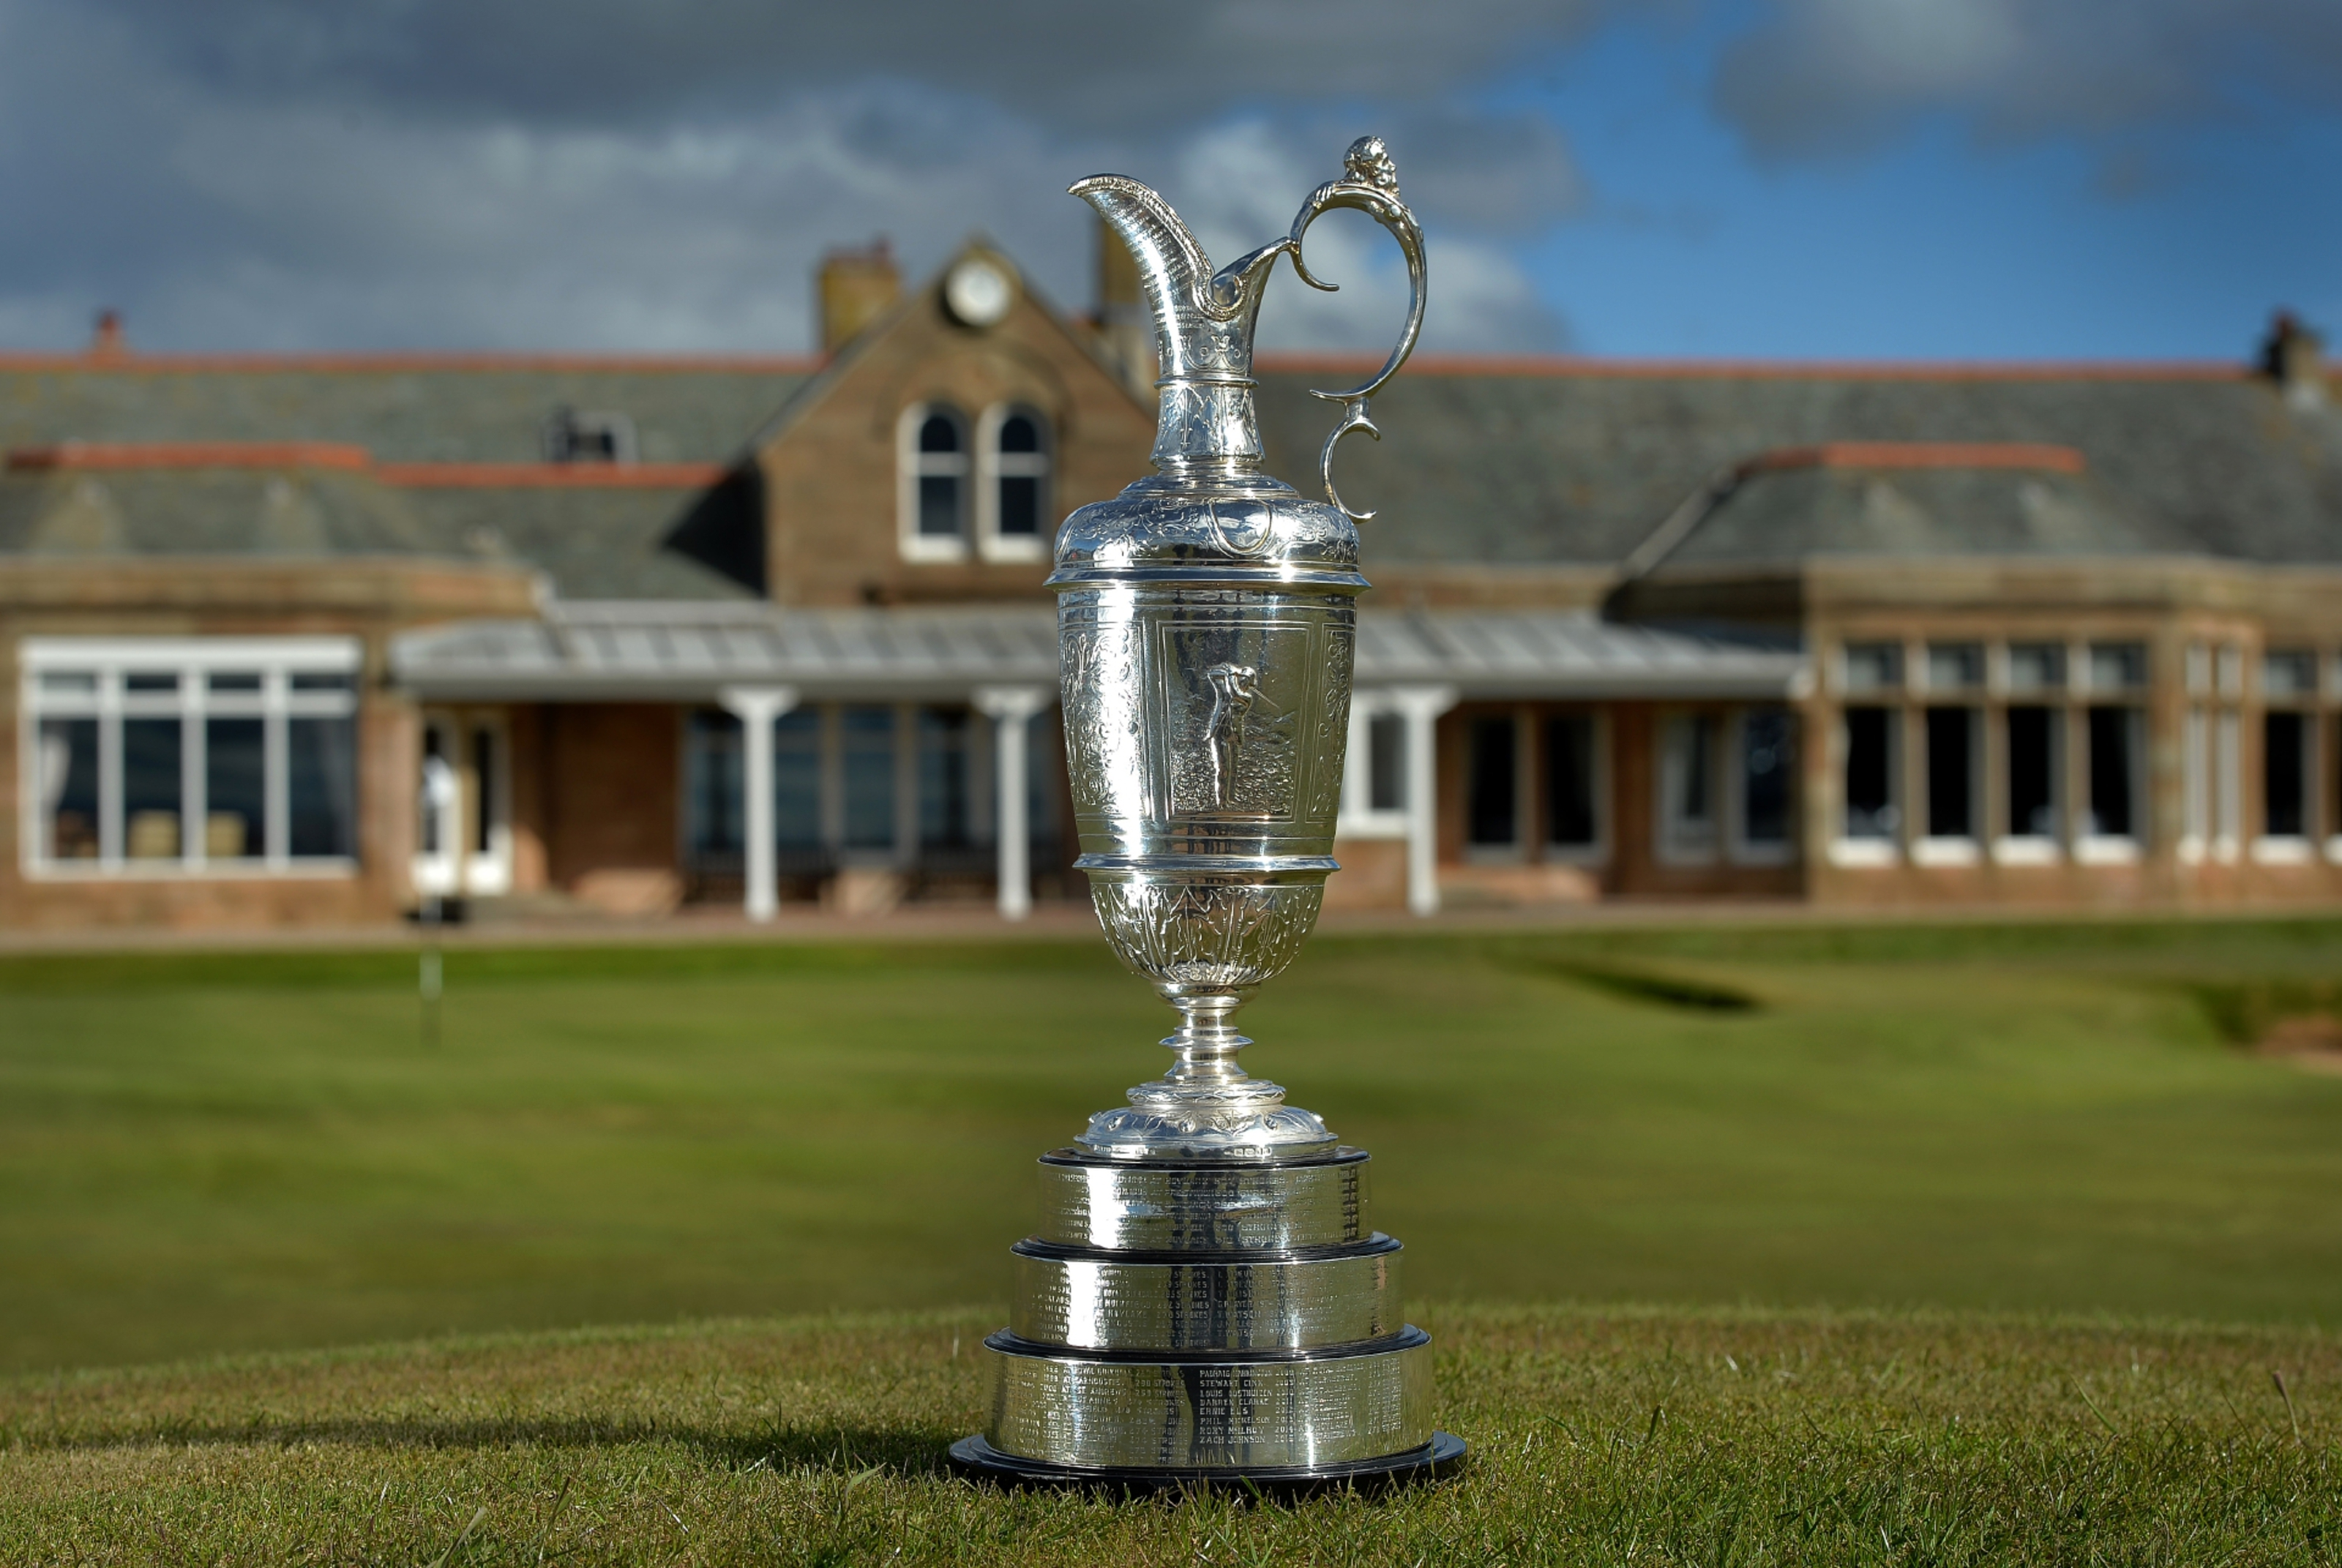 Royal Troon is set to be the last remaining Open Championship host that has an all-male membership.